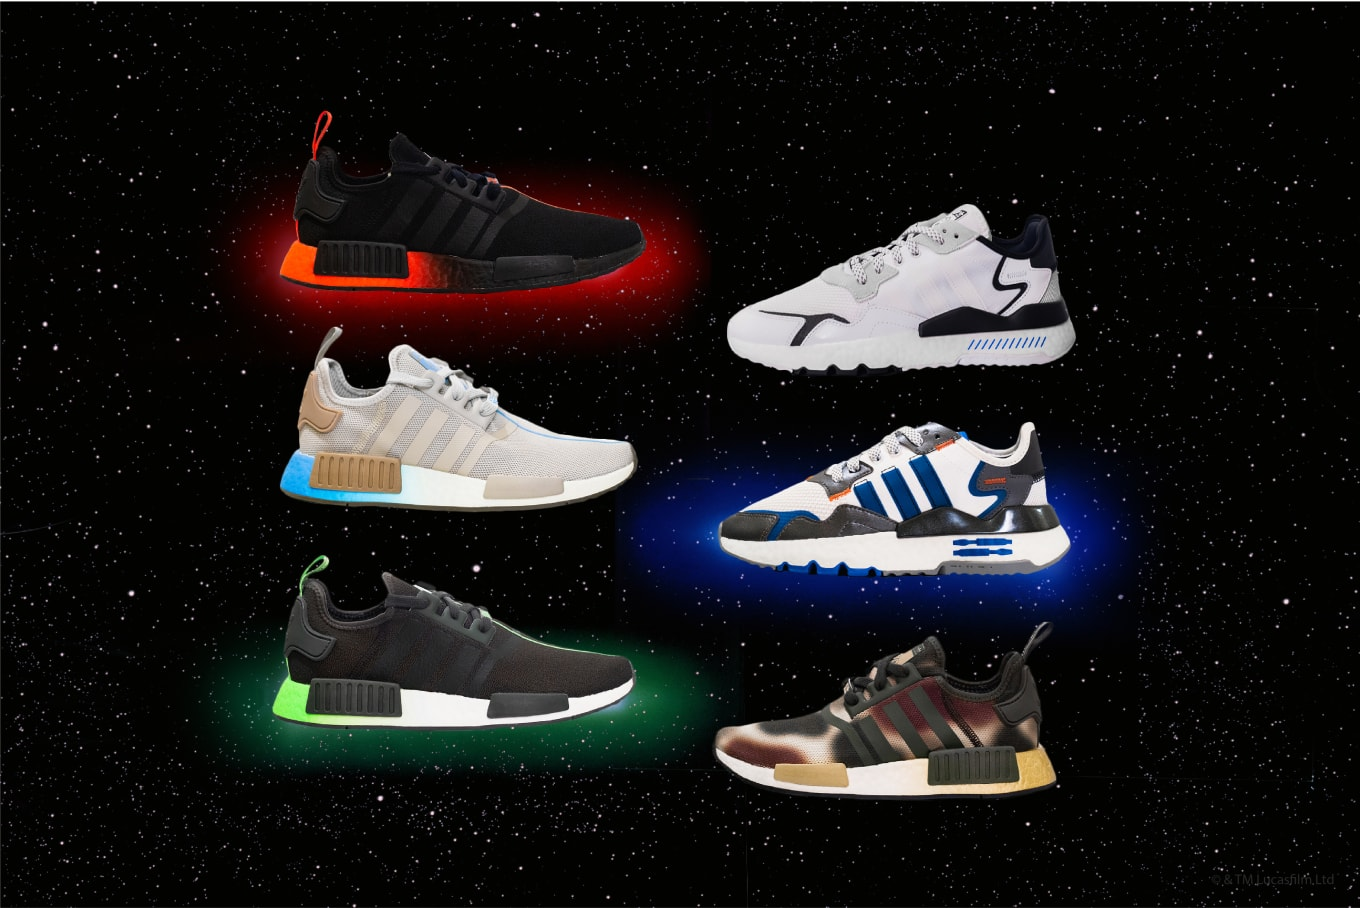 Star Wars x Adidas Running 'Character' Collection Release